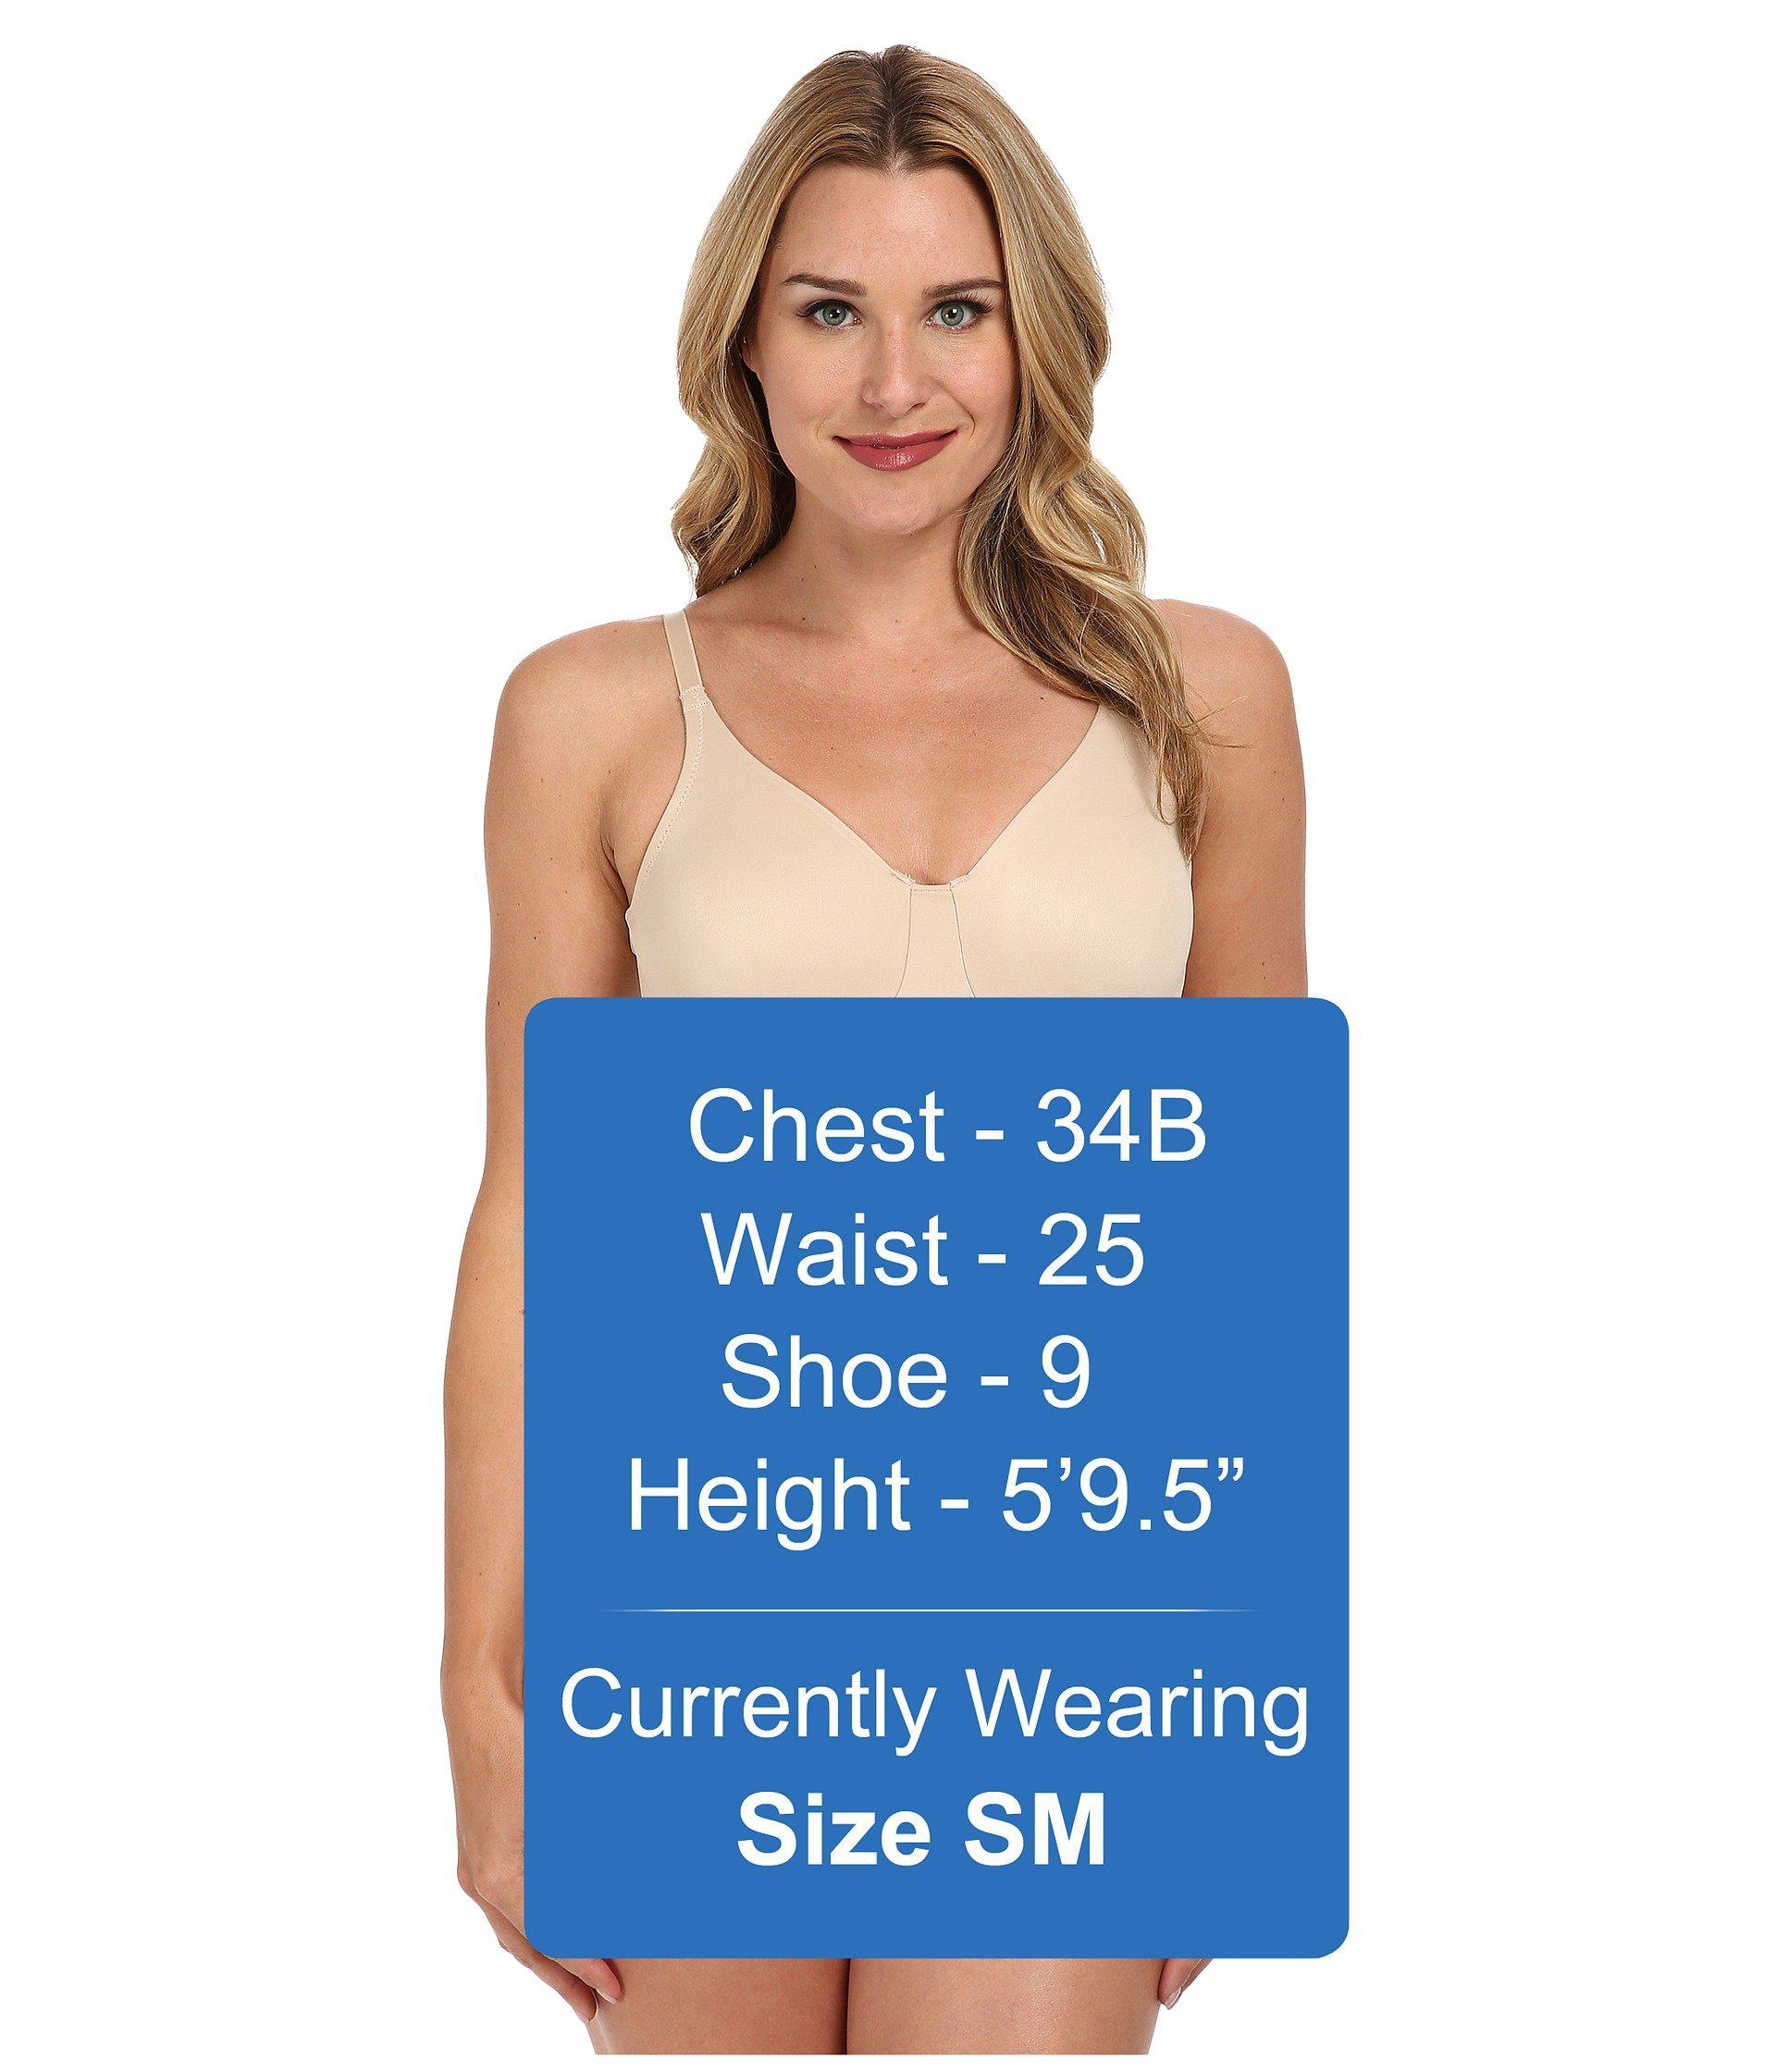 f9f1d74d67 Miraclesuit - Natural Extra Firm Comfort Leg Smooth Molded Cup Bodybriefer  (nude) Women s Bra. View fullscreen